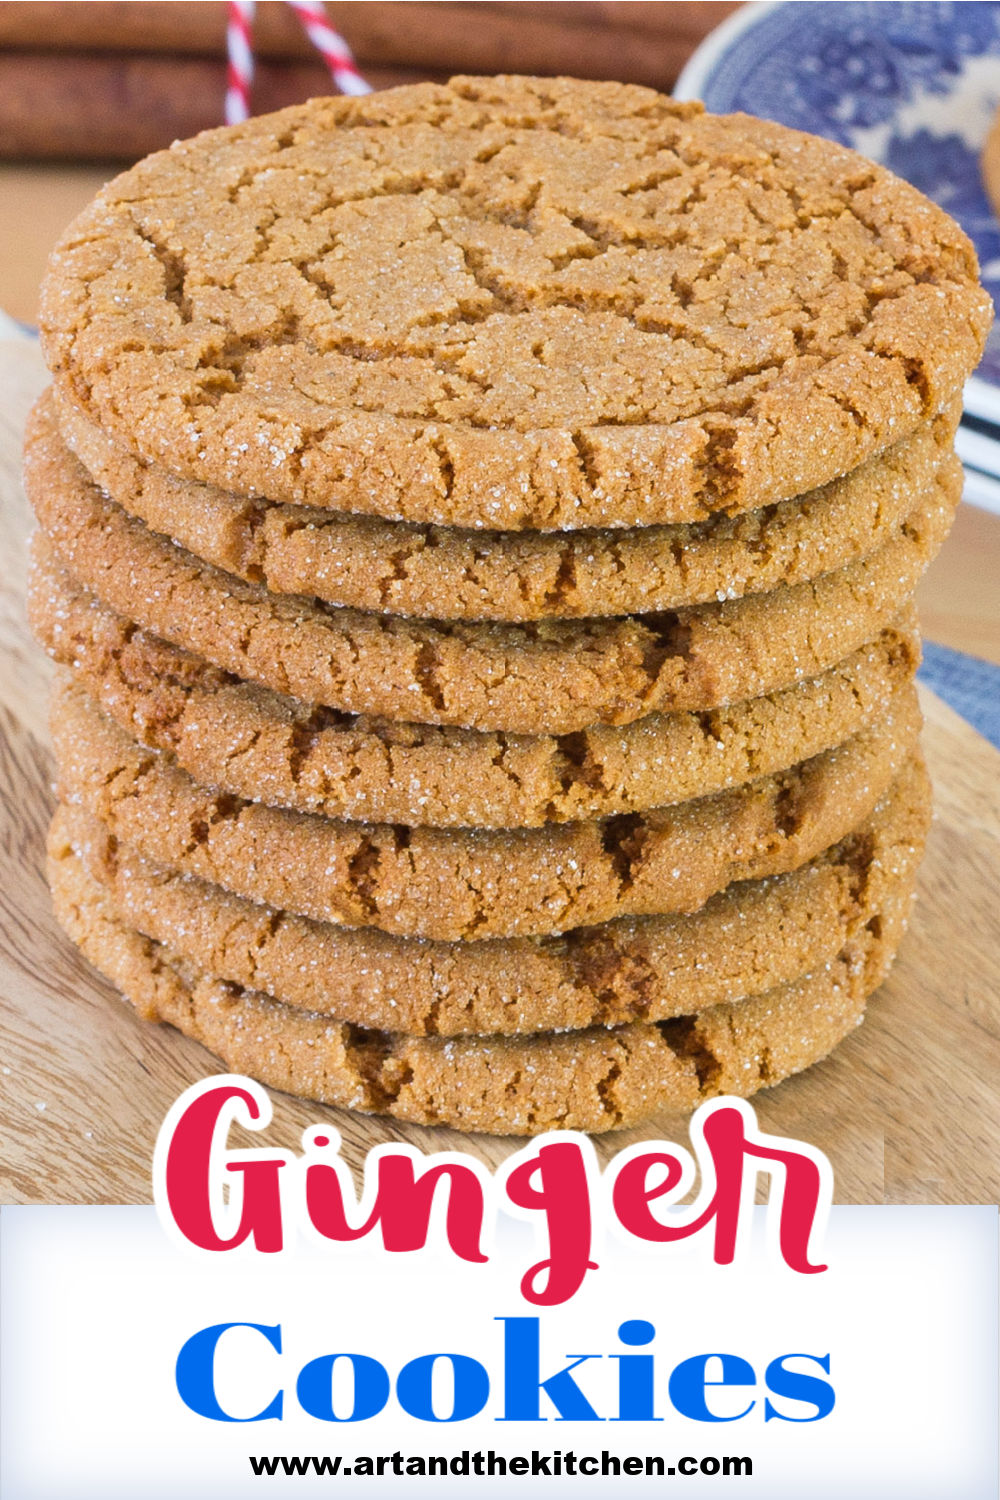 Ginger Cookies that are perfectly spiced with tasty ginger and molasses. Crispy on the outside and chewy on the inside. via @artandthekitch